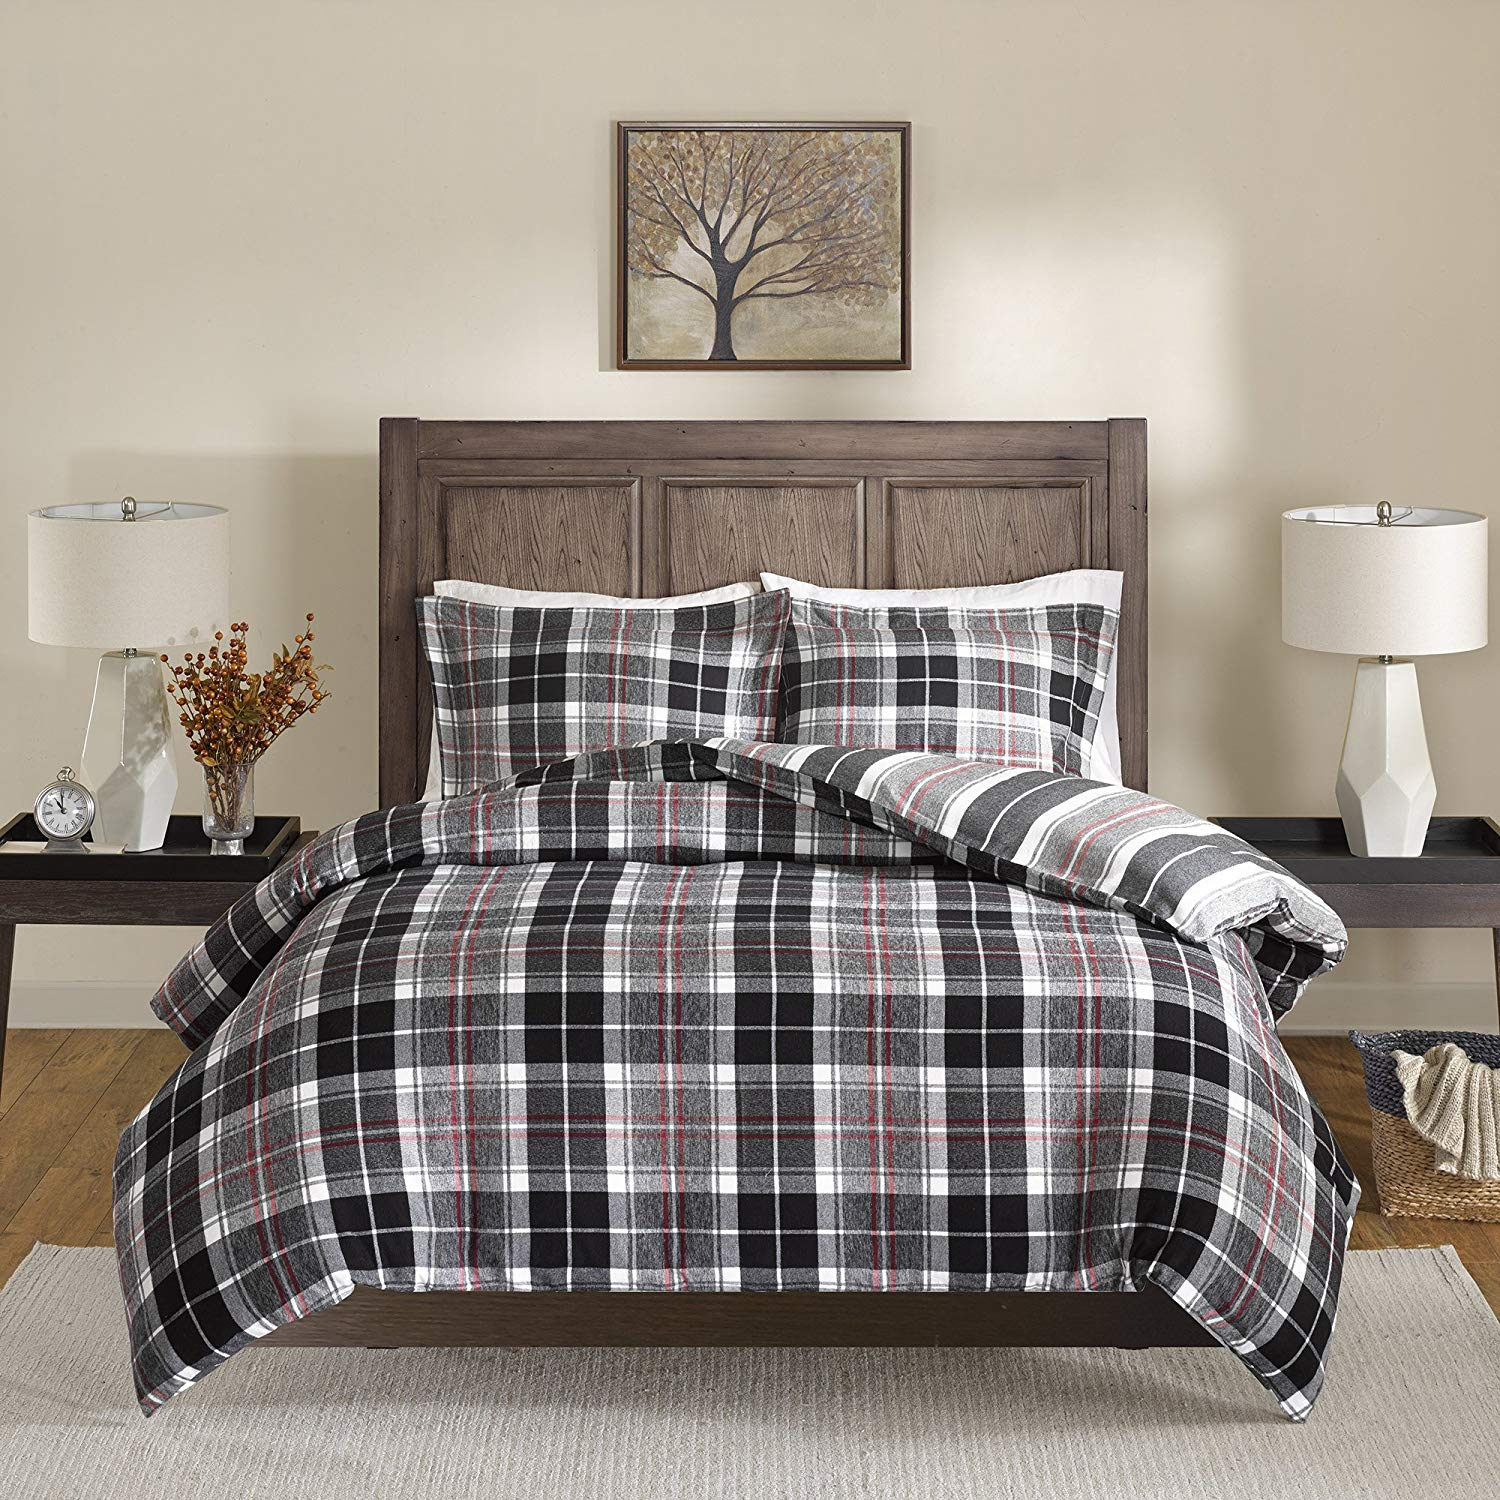 3 Piece Black Red Plaid Patterned Duvet Cover Queen Set, White Grey Checkered Gingham Lumberjack Glen Check Tartan Striped, Casual Reversible Crossing Lines Adult Bedding Master Bedroom Cotton Flannel